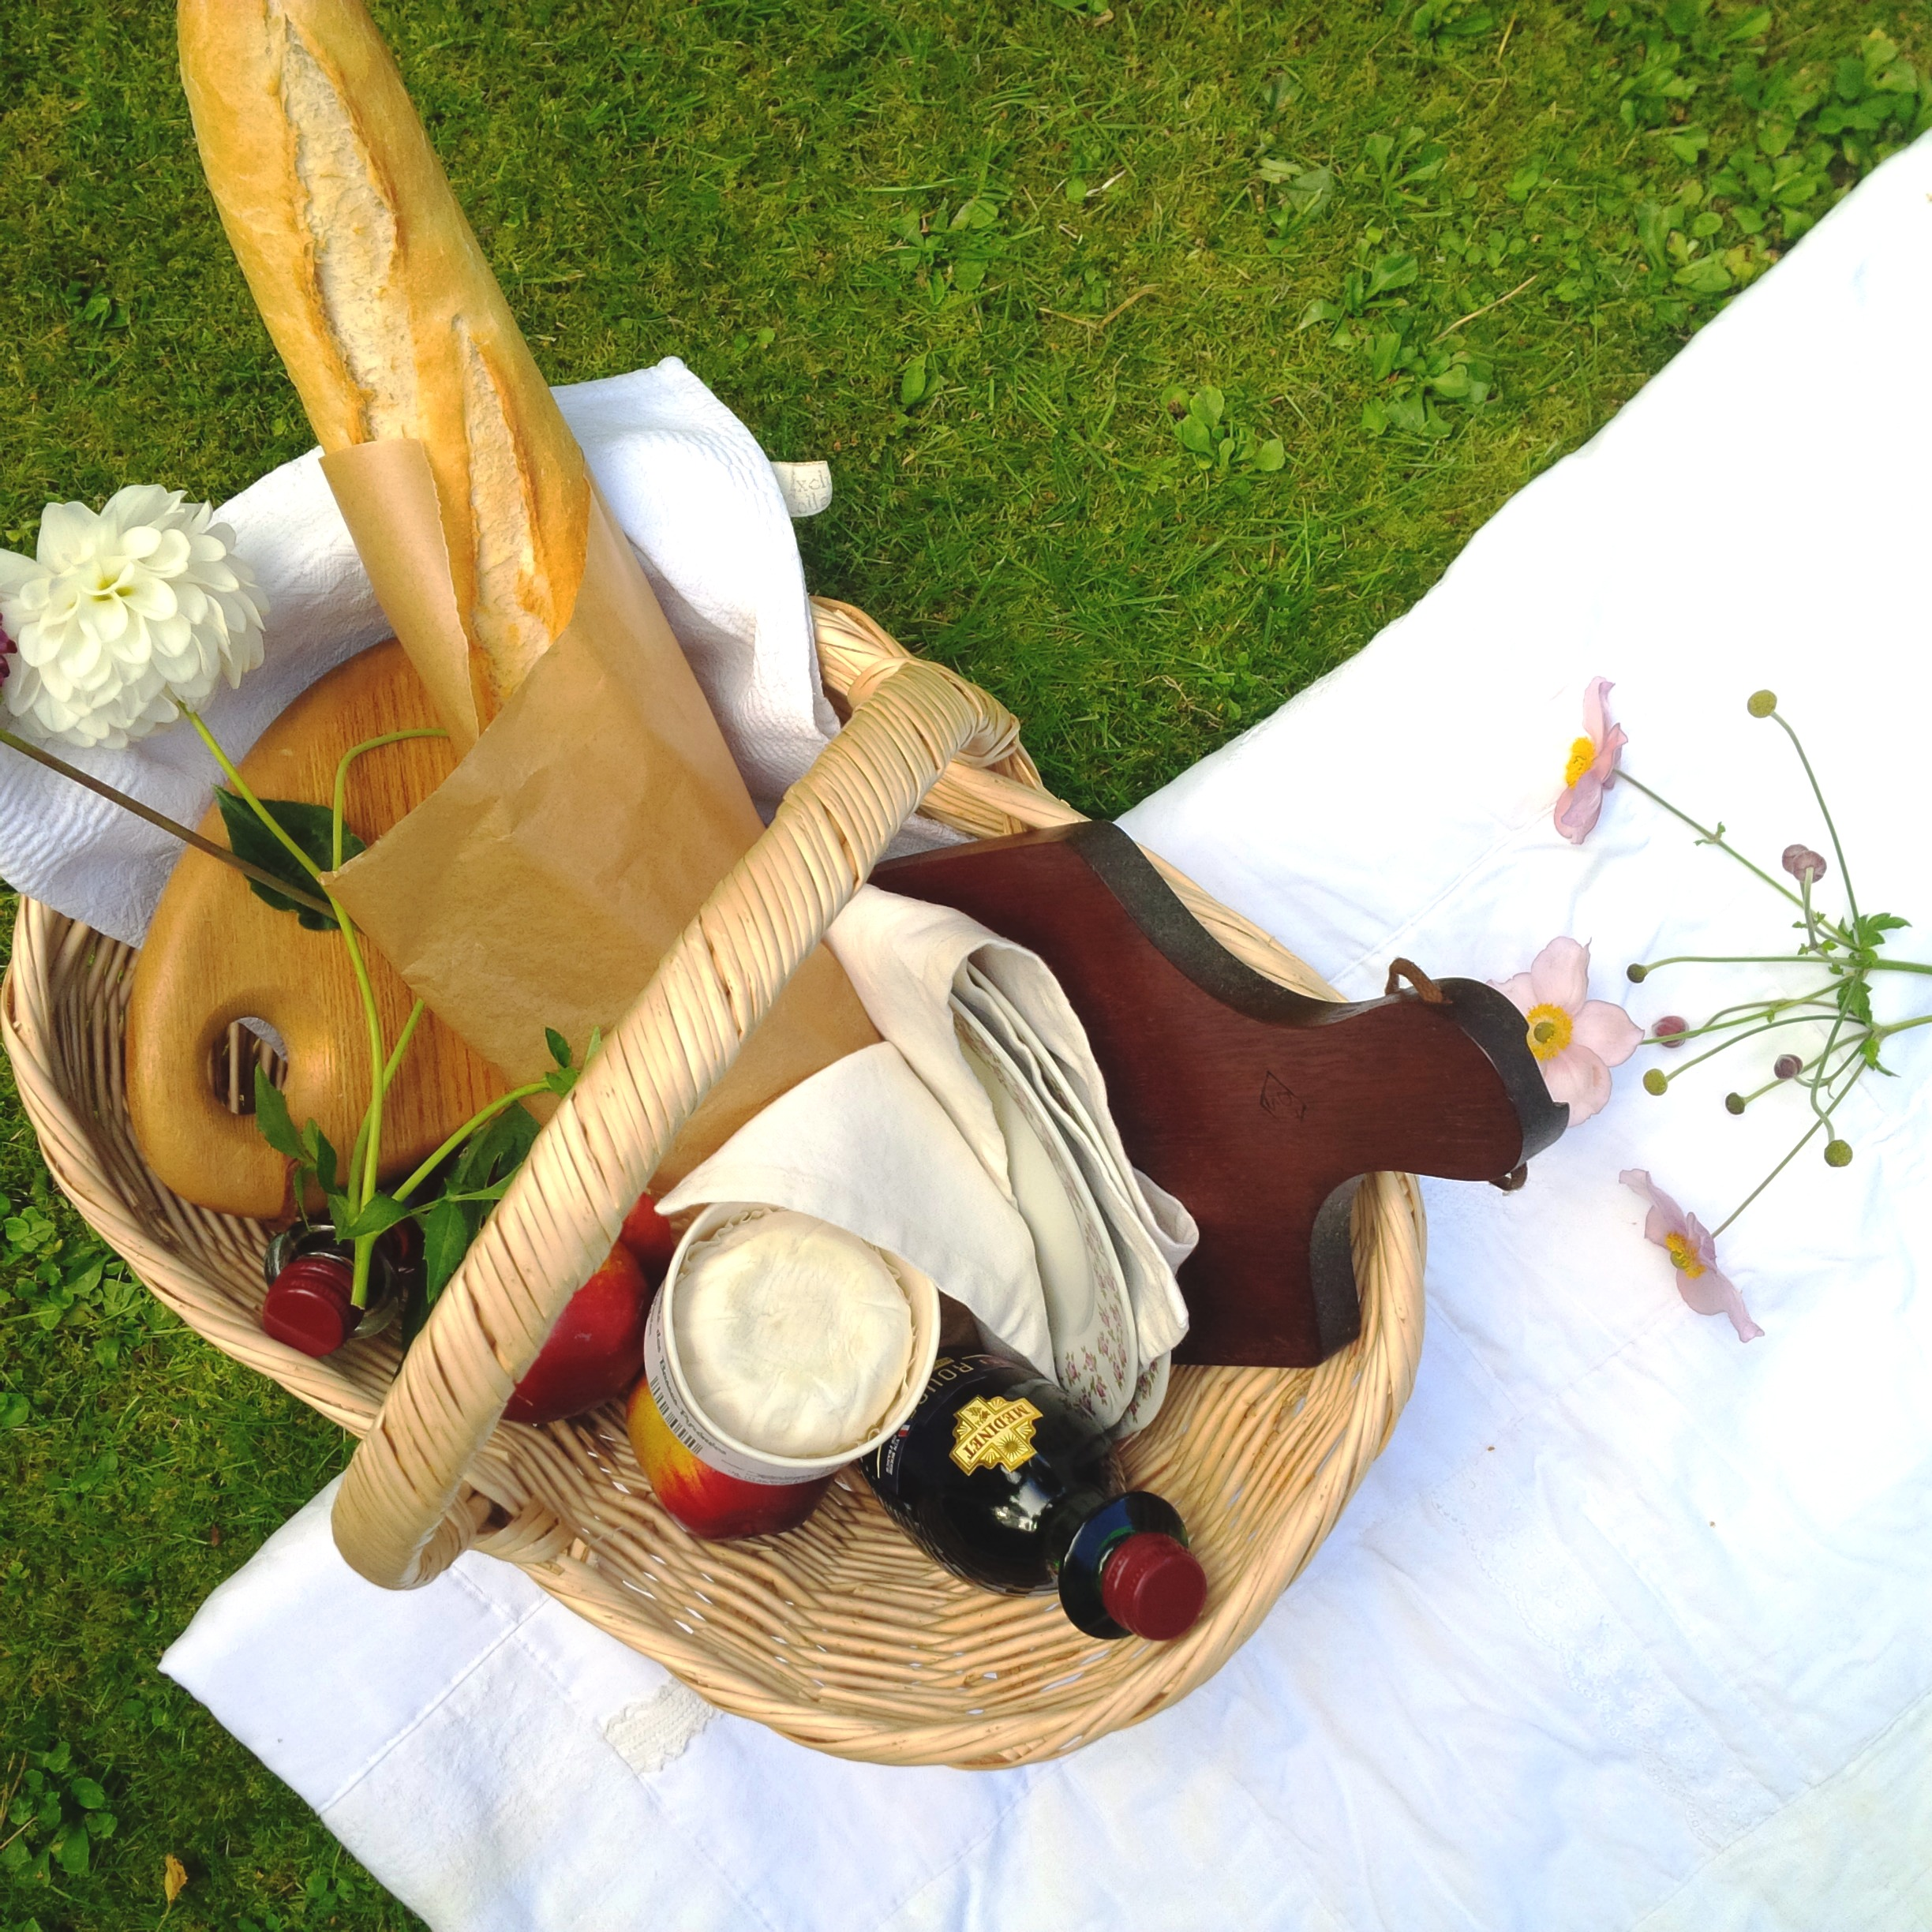 7 Steps To The Perfect Summer Picnic. Liebe was ist - perfektes Sommer-Picknick. Inspiration. Lifestyle Advice. Tipps und Tricks (13).jpg